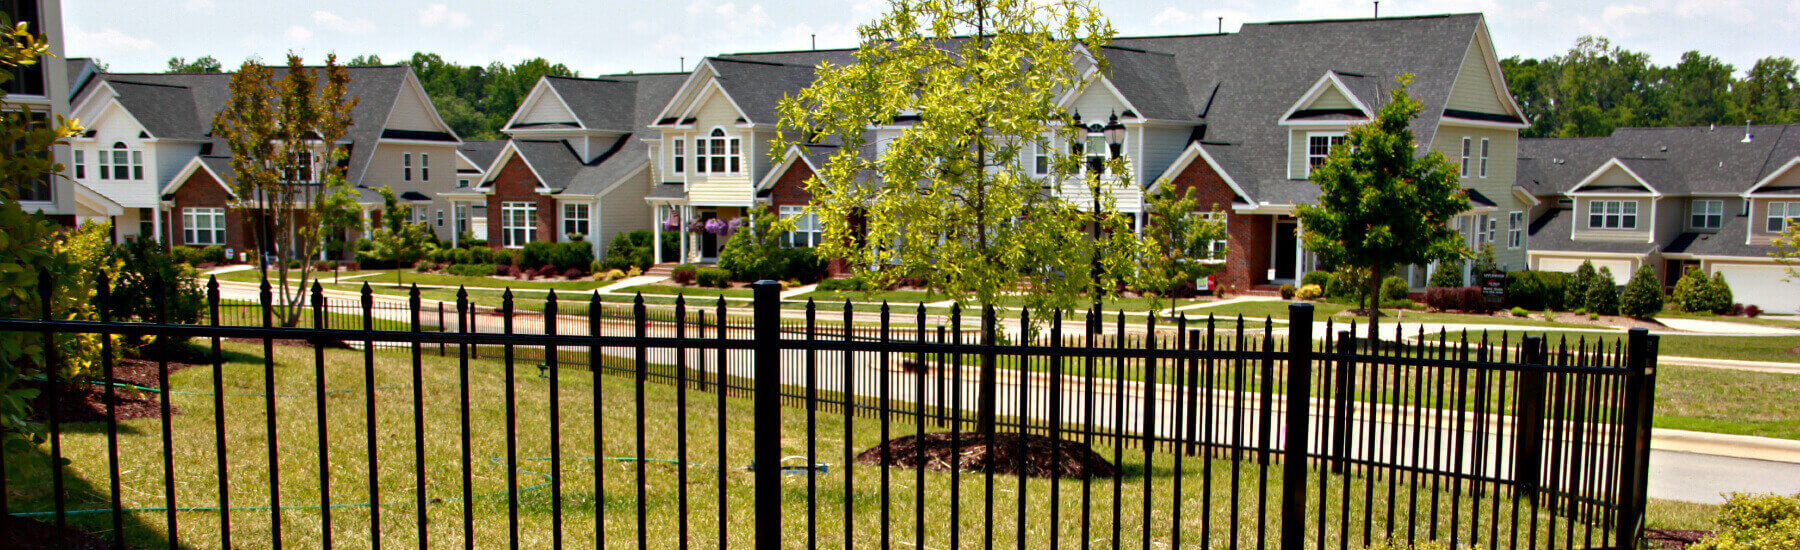 Residential Fence Gate Installations Repairs Seegars Fence Company